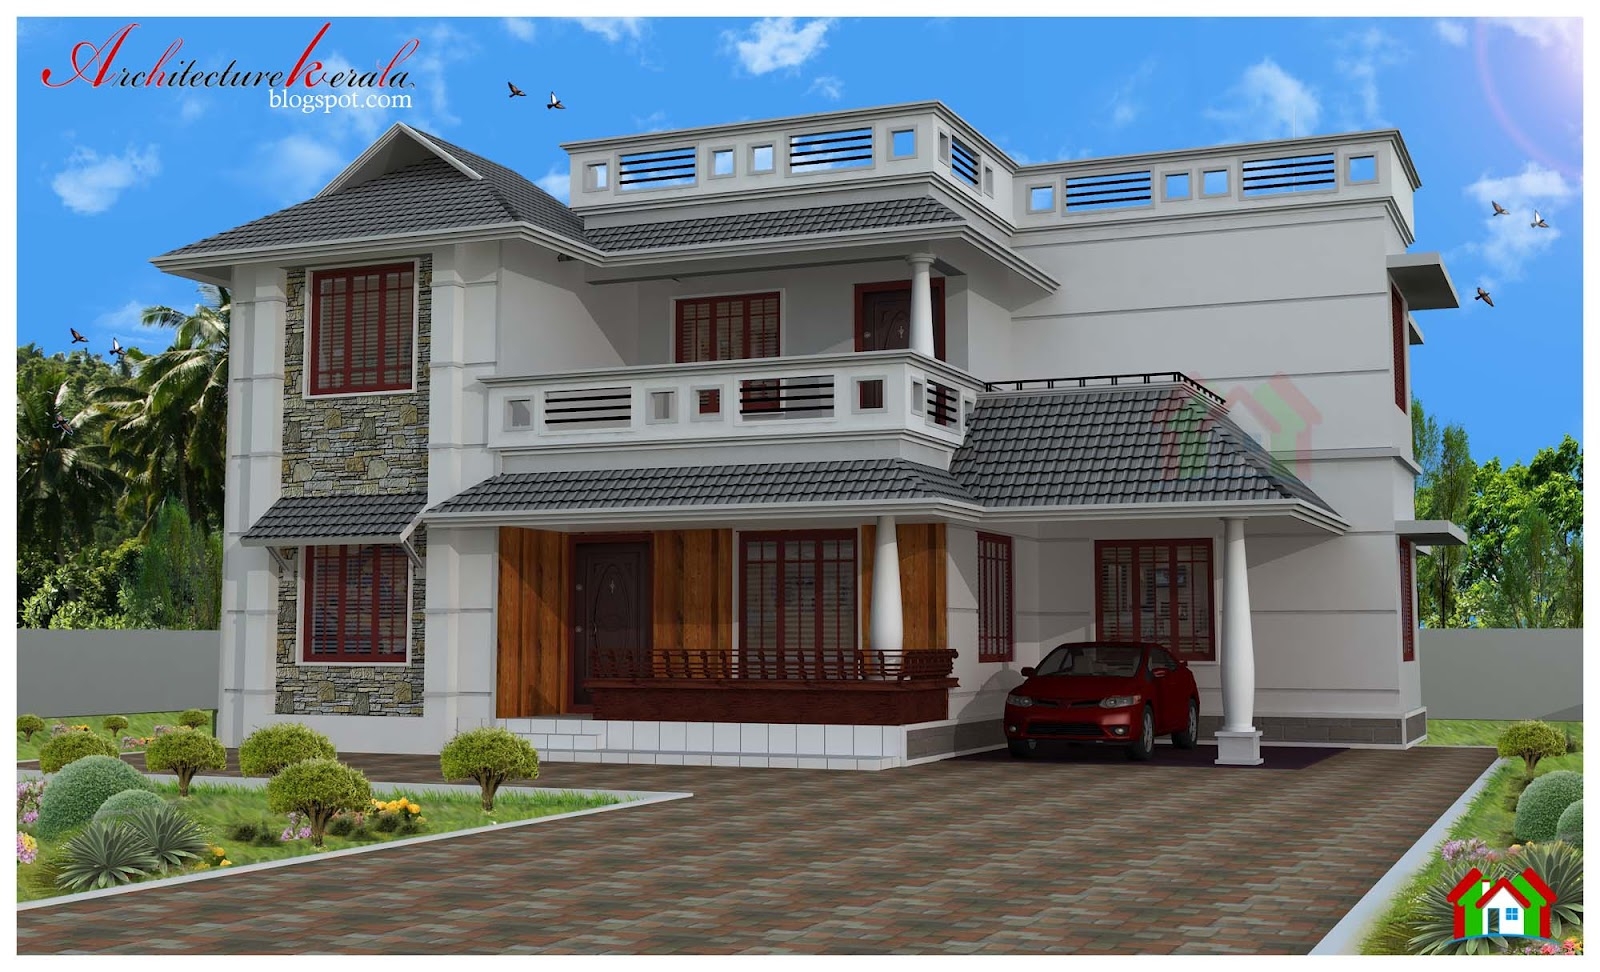 Architecture kerala four bed room house plan for 4 bedroom kerala house plans and elevations